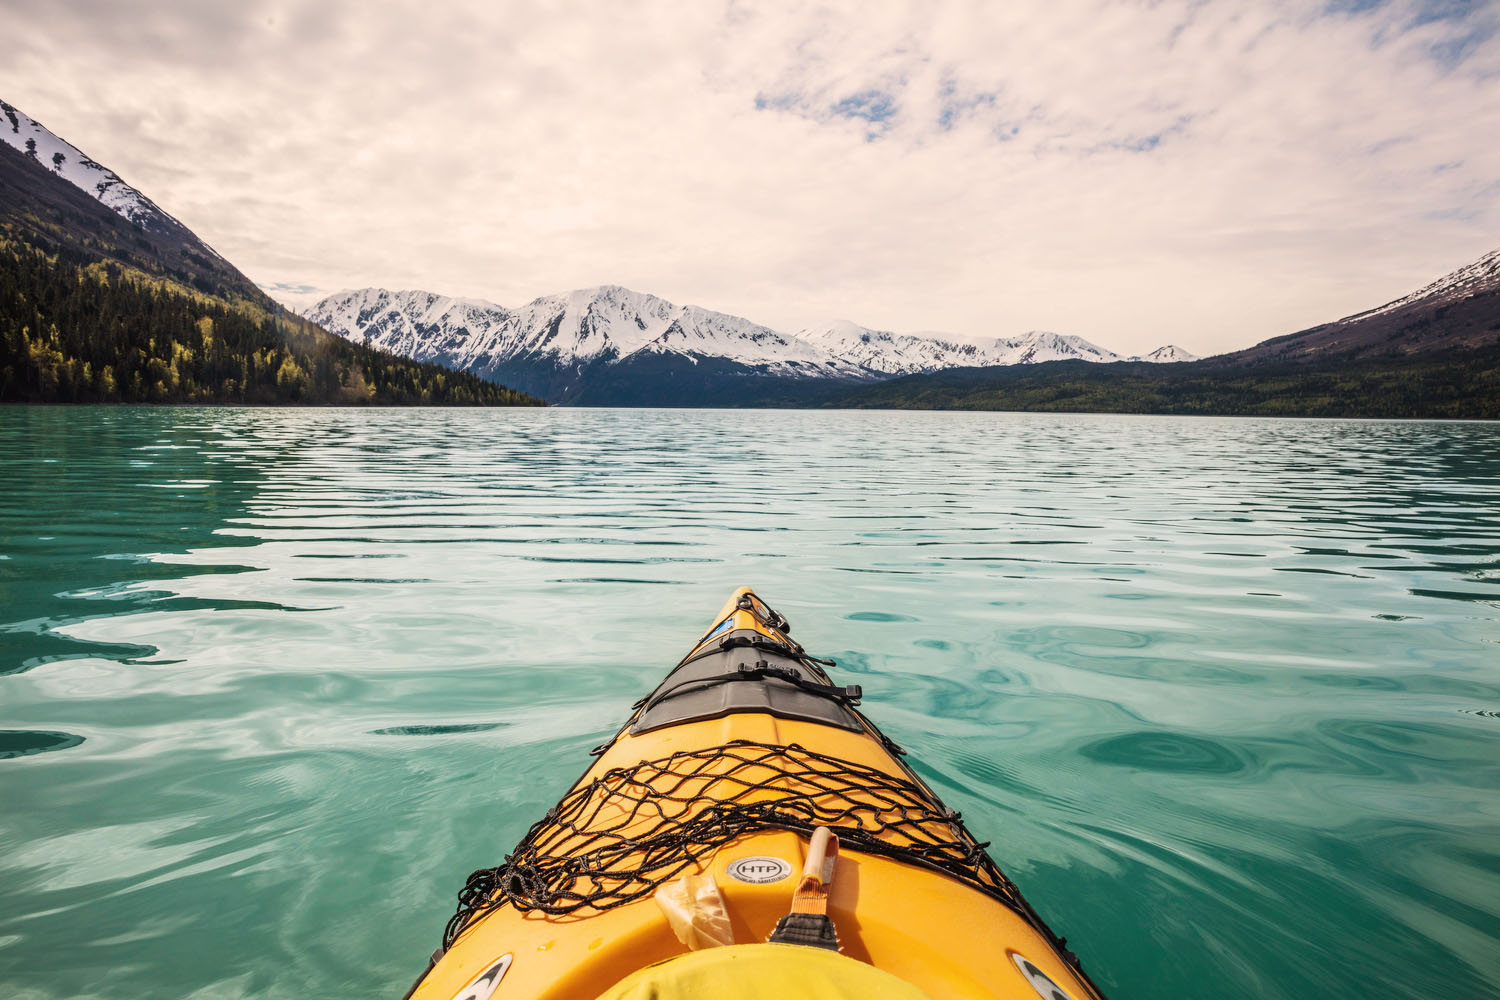 20180527_Alaska Kenai Lake Kayaking_01649.JPG